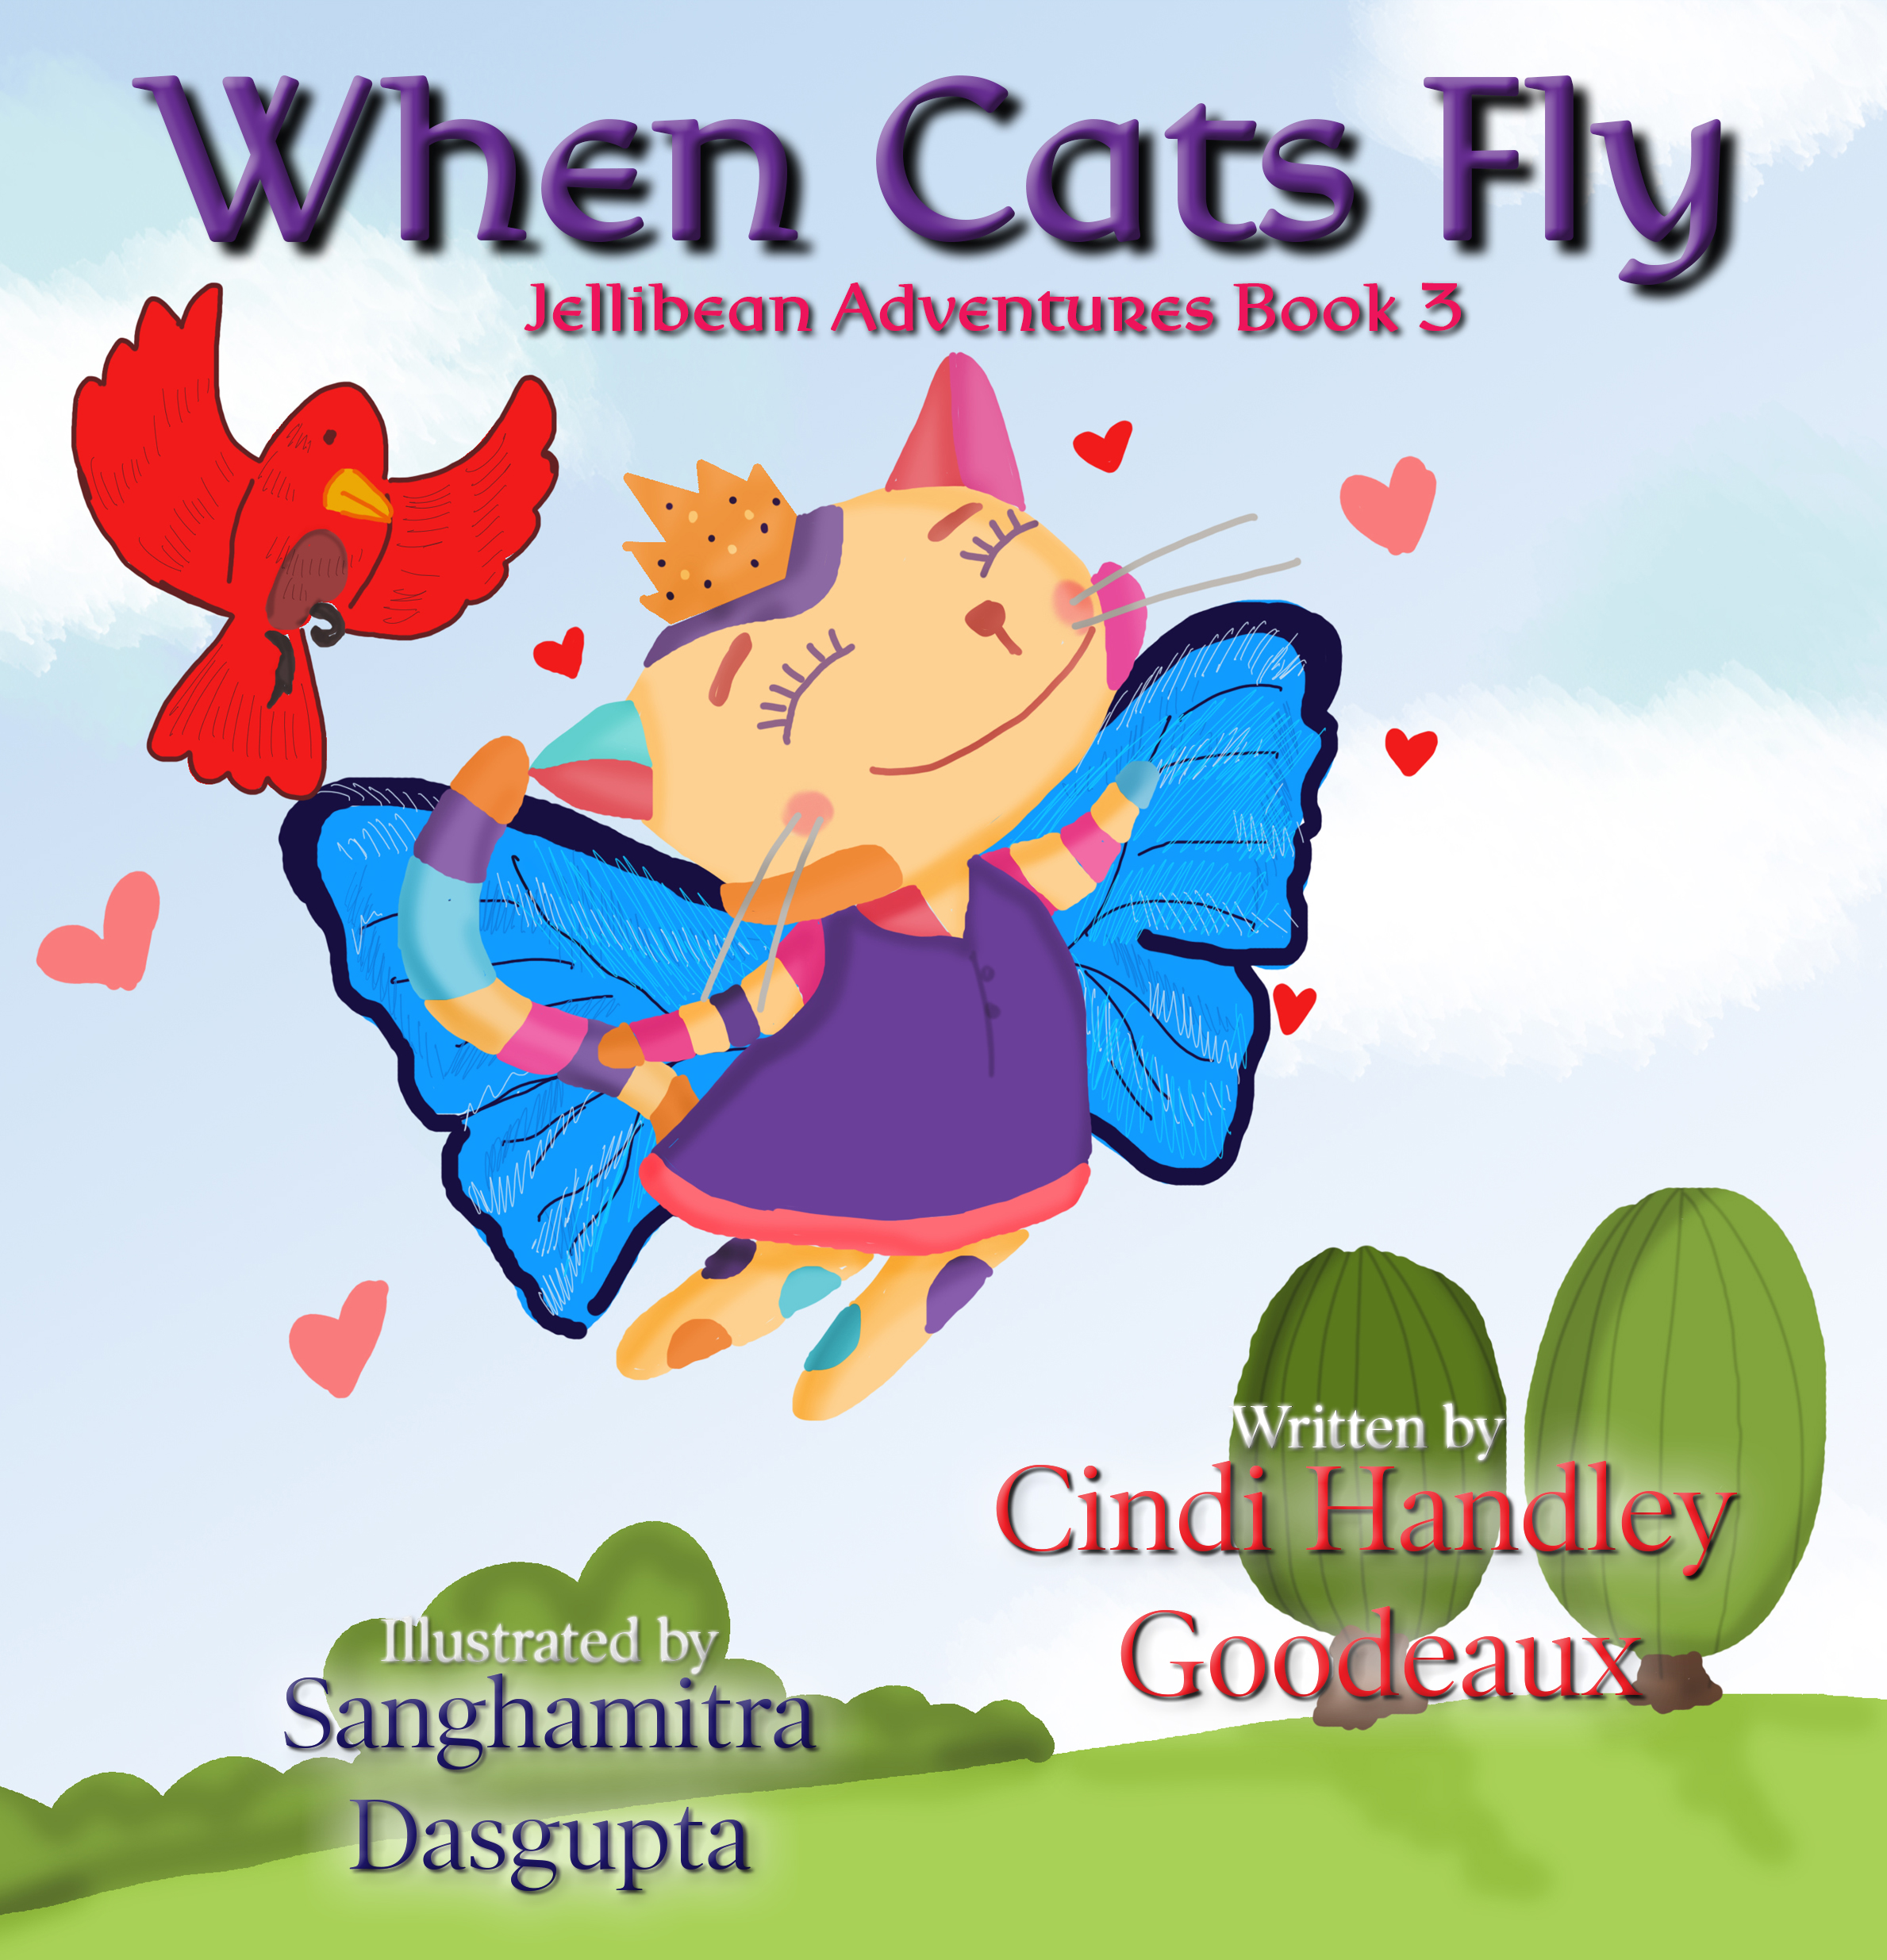 Jellibean Adventures Book 3: When Cats Fly